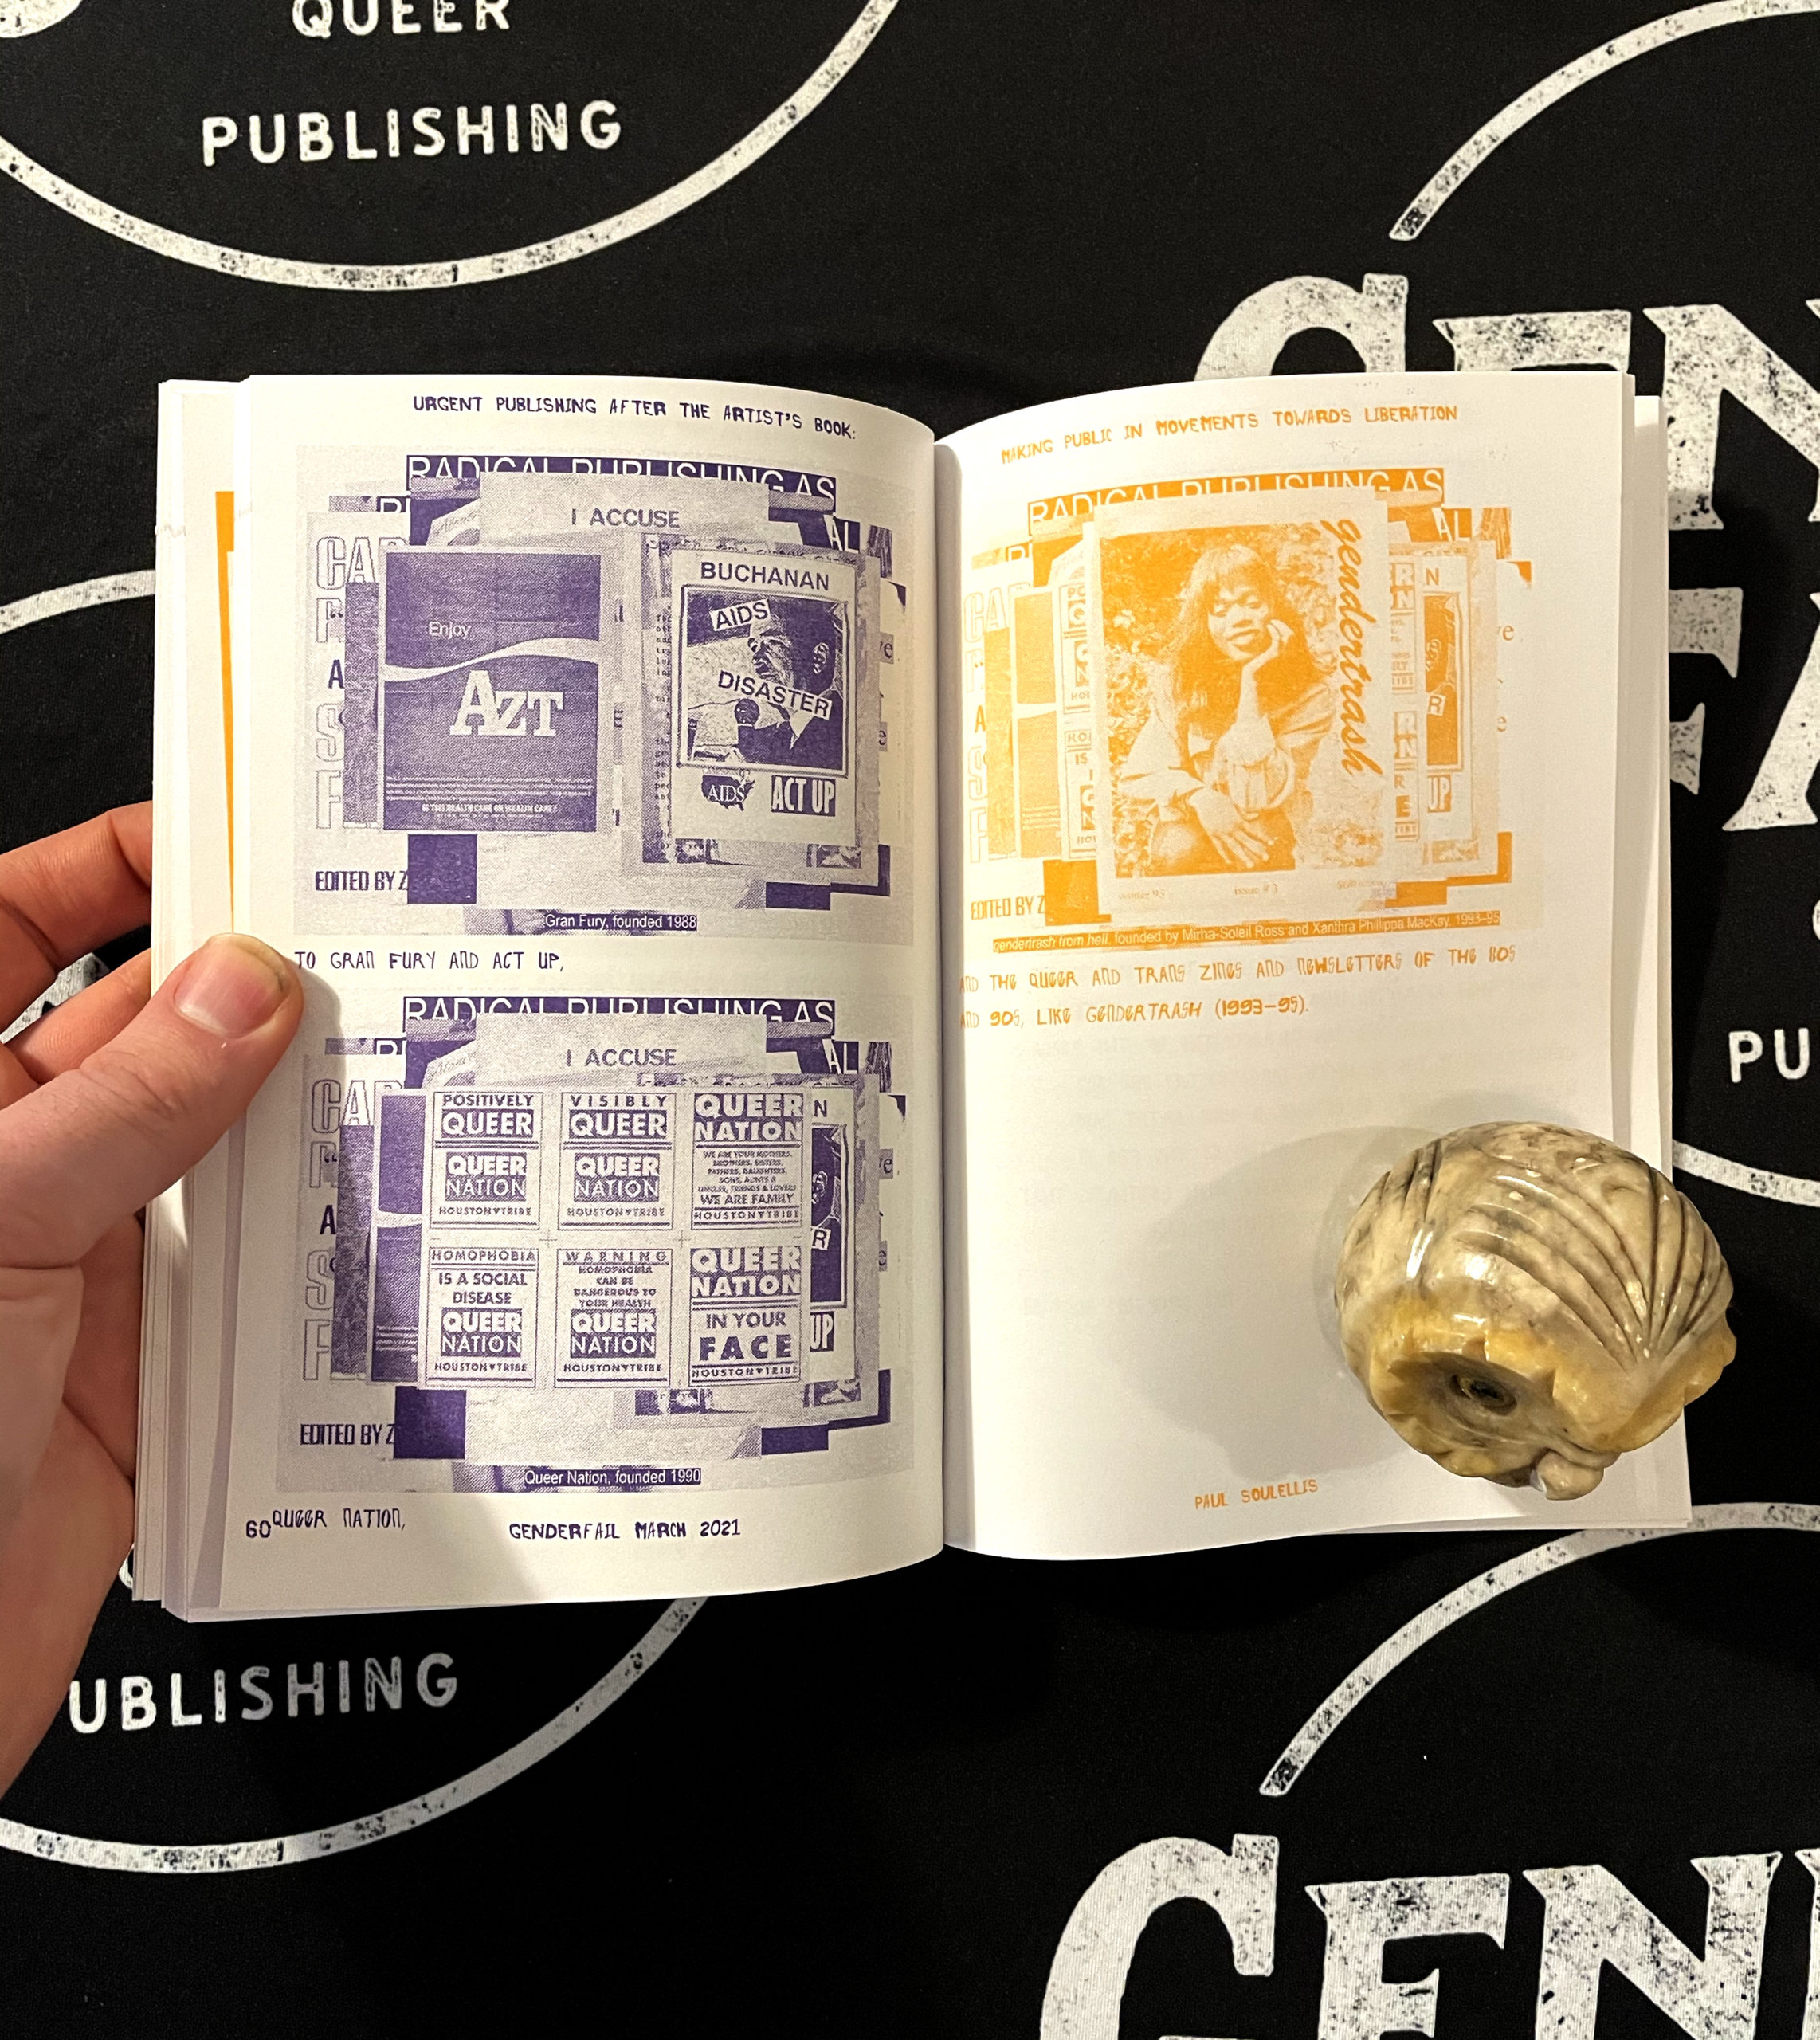 Risograph printed book spread in purple and orange